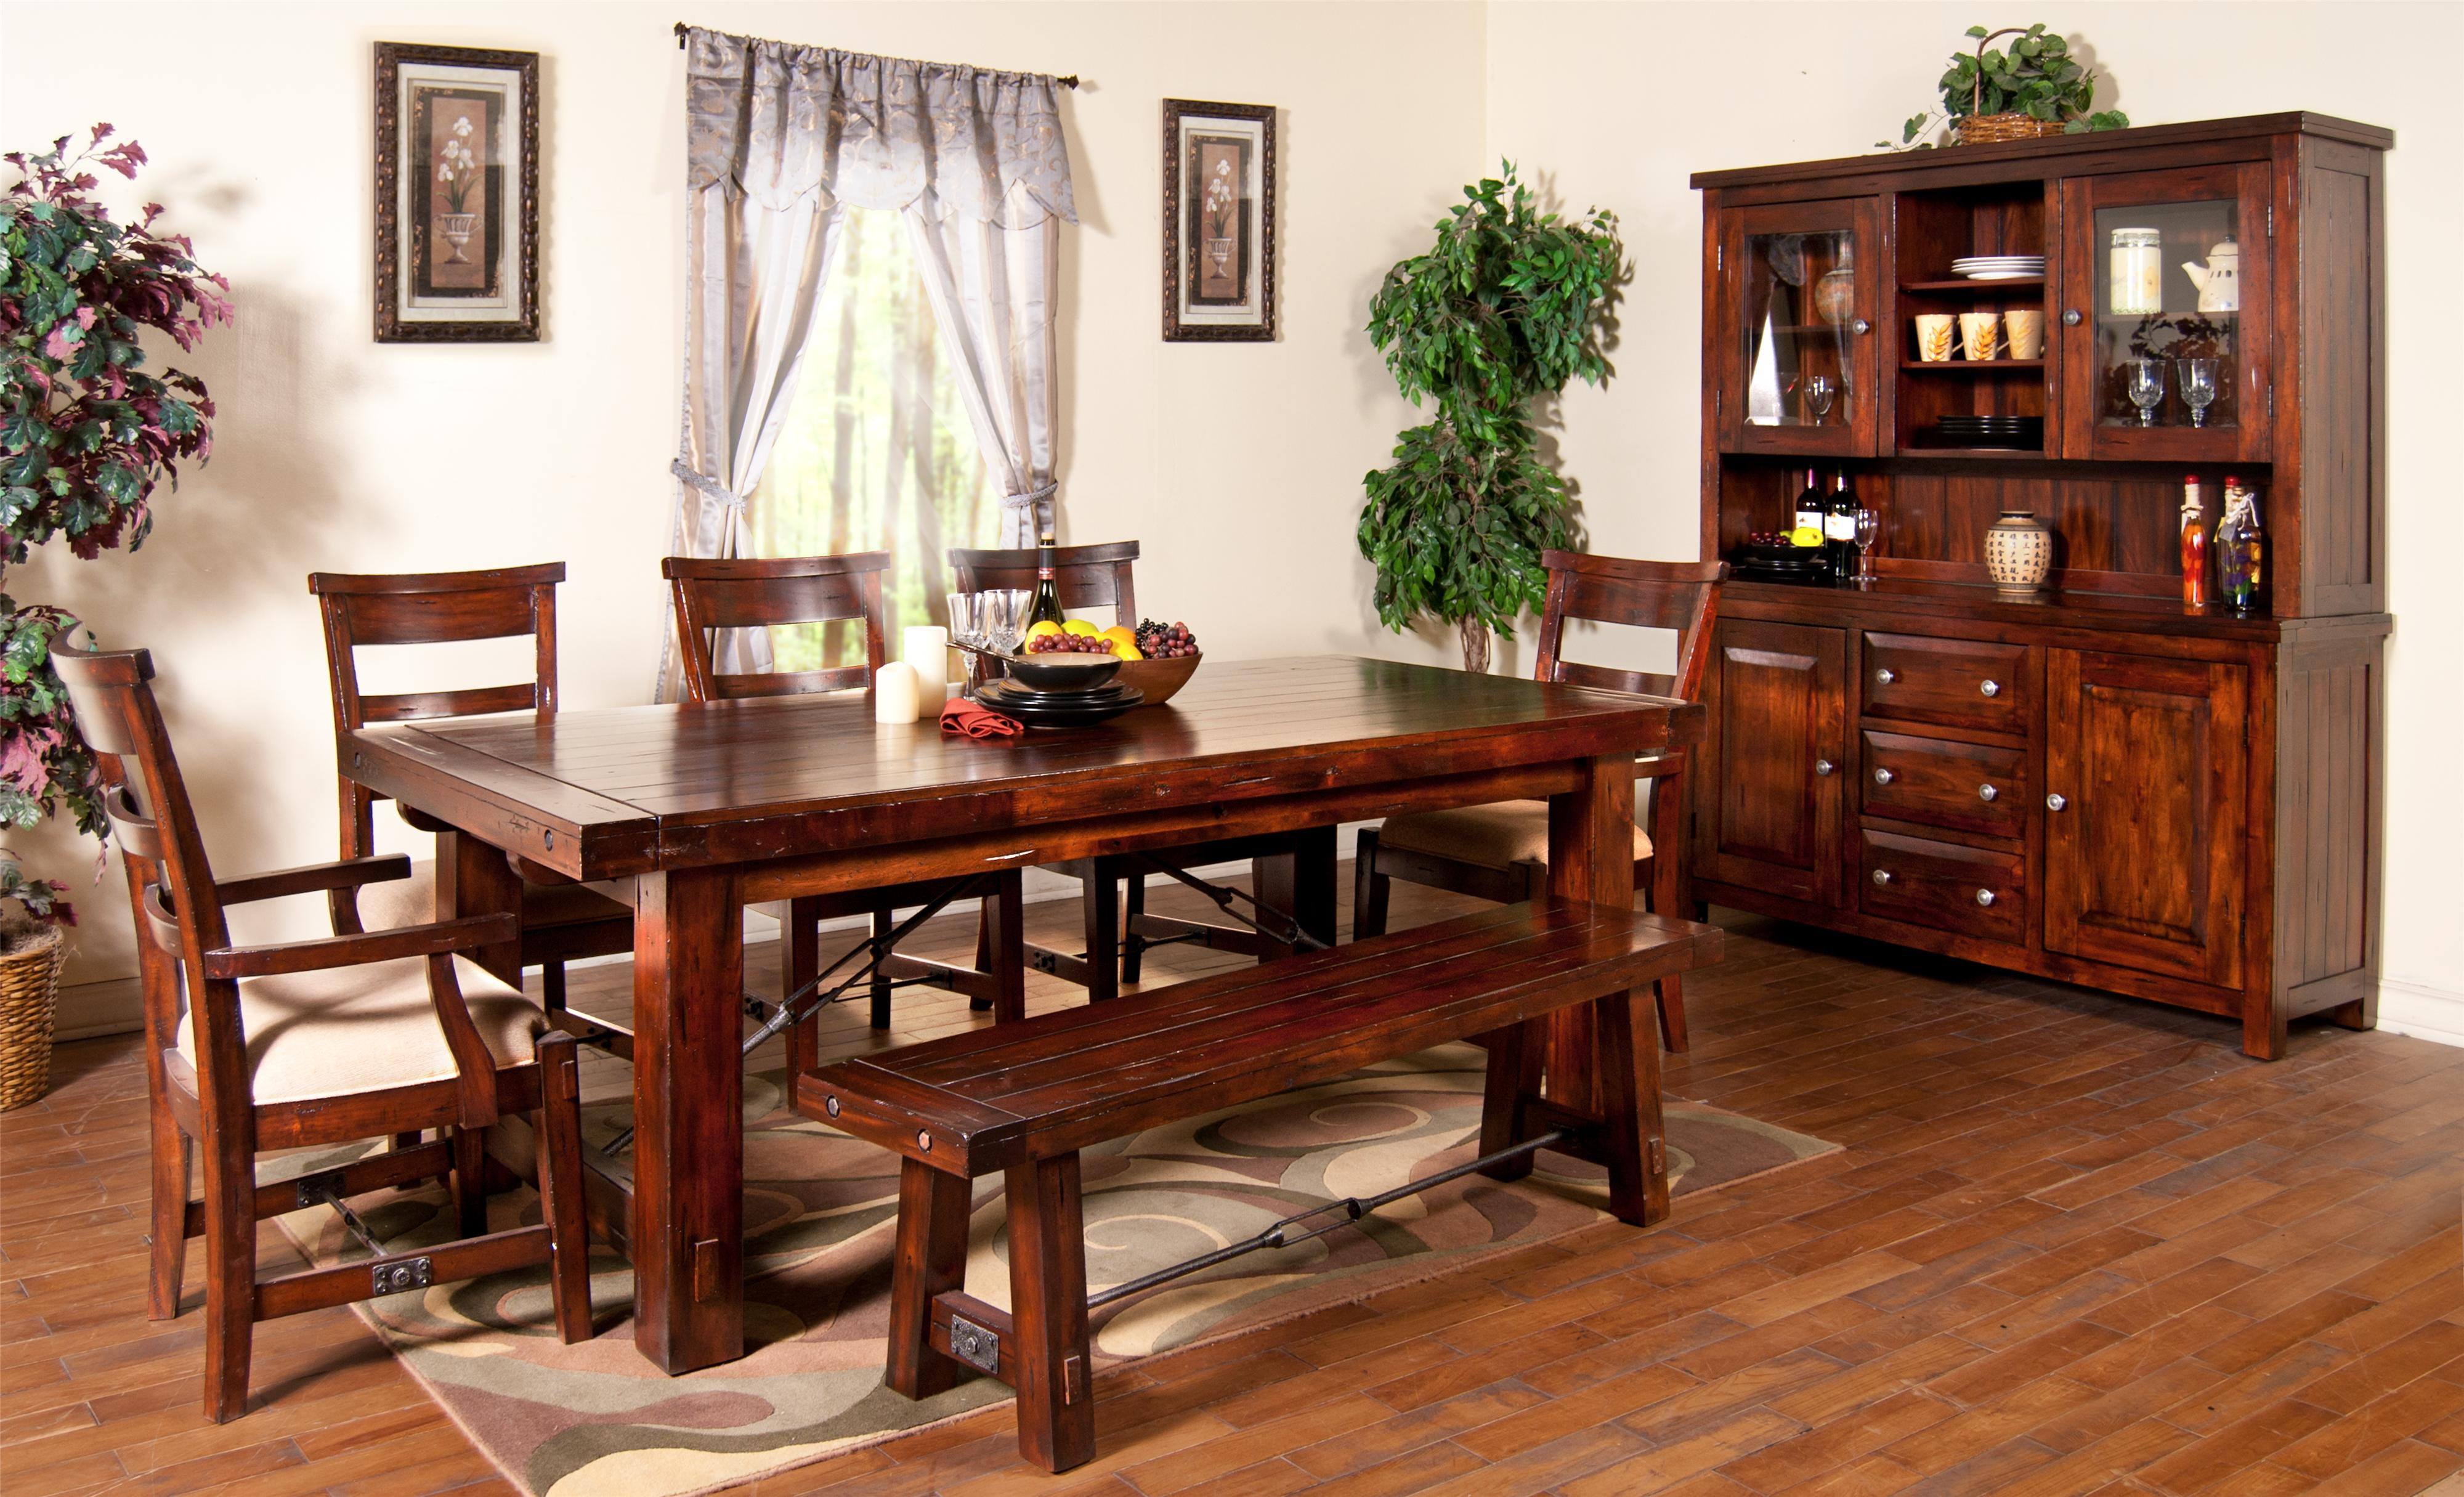 Vineyard 7 Piece Extension Table With Chairs And Bench Set By Sunny Designs Wolf Furniture